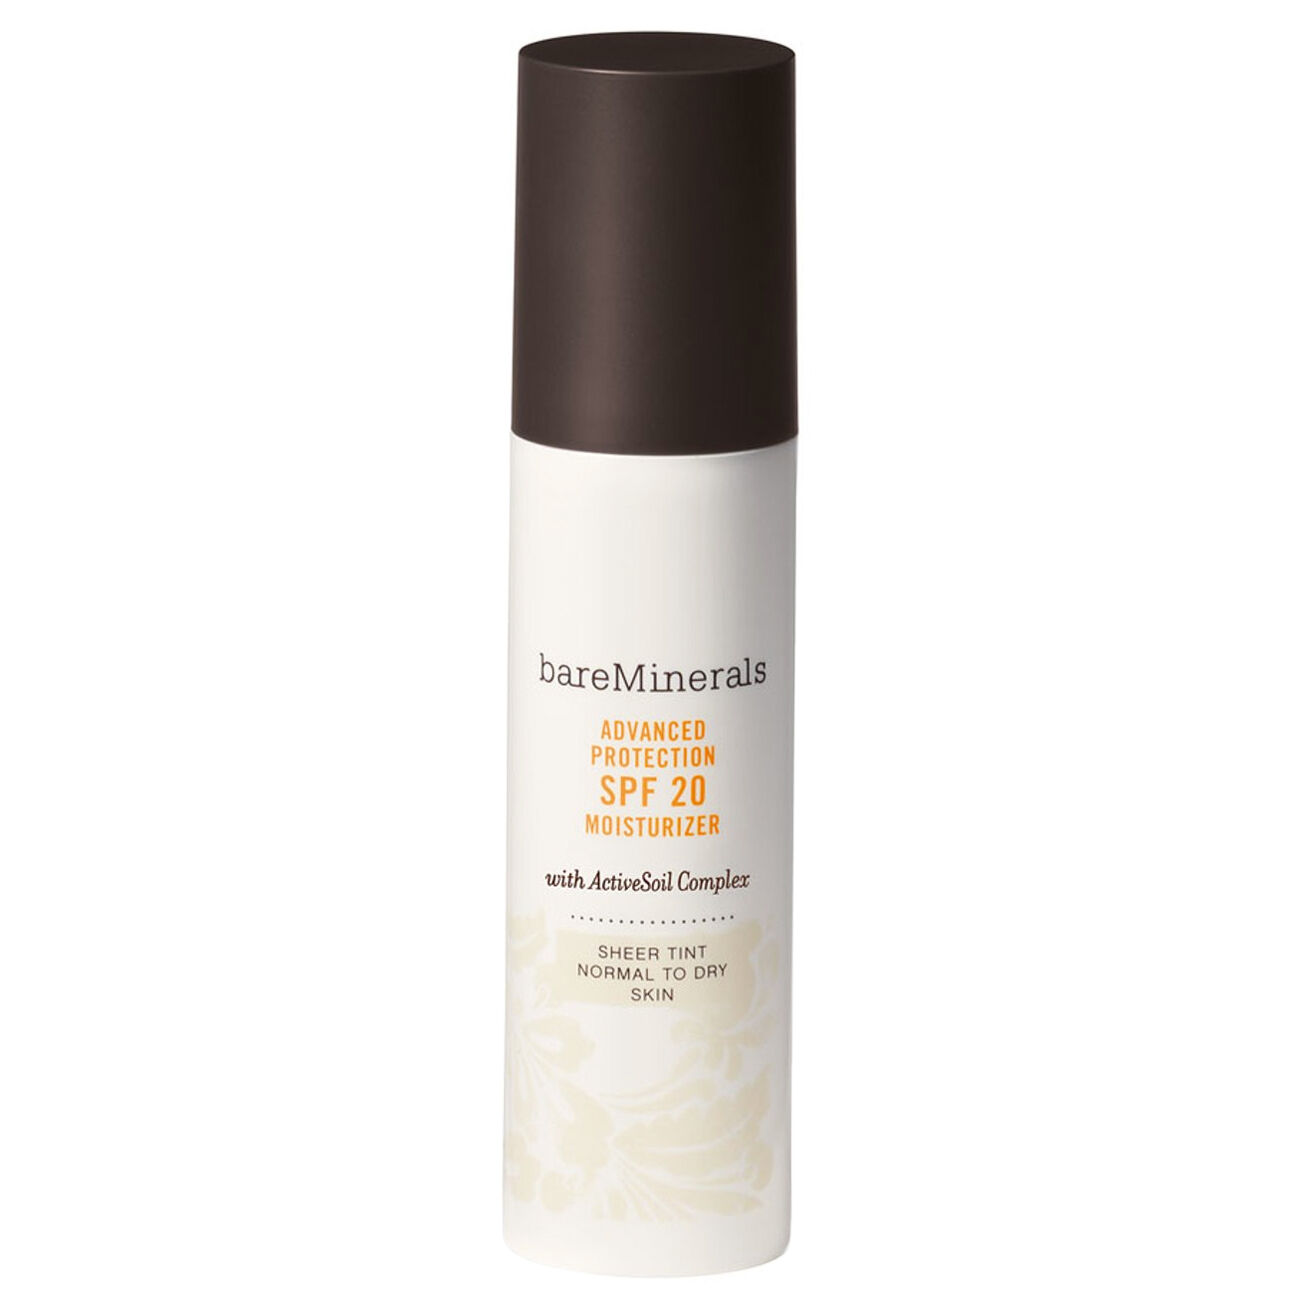 bareMinerals Advanced Protection SPF 20 Sheer Tint Normal To